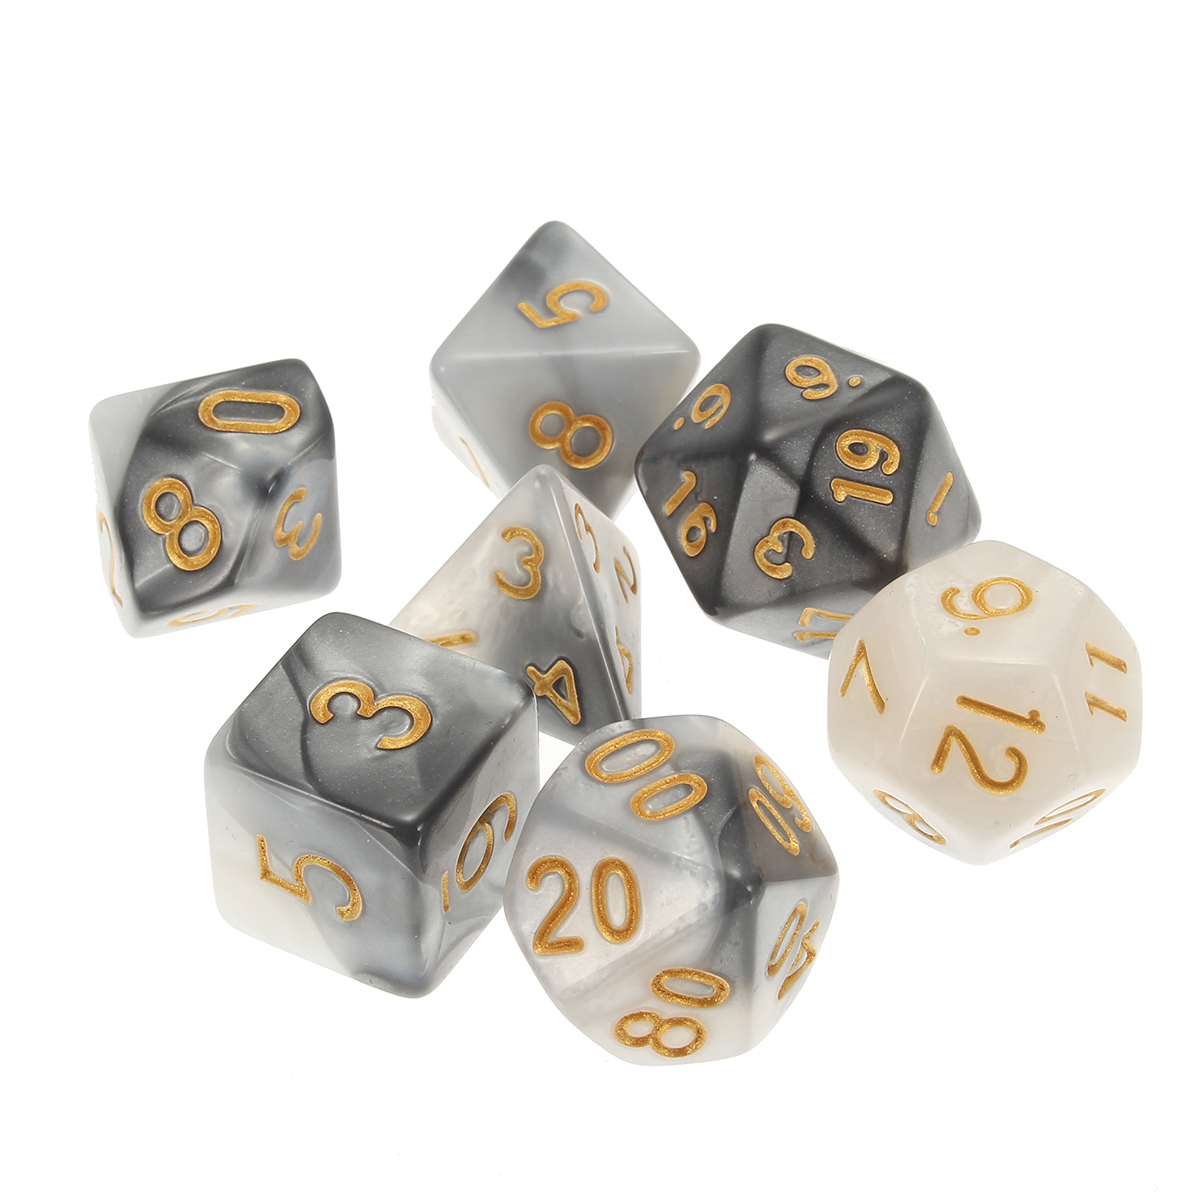 42 Pieces Polyhedral Dice Set Multisided Dices Role Playing Games Gadget